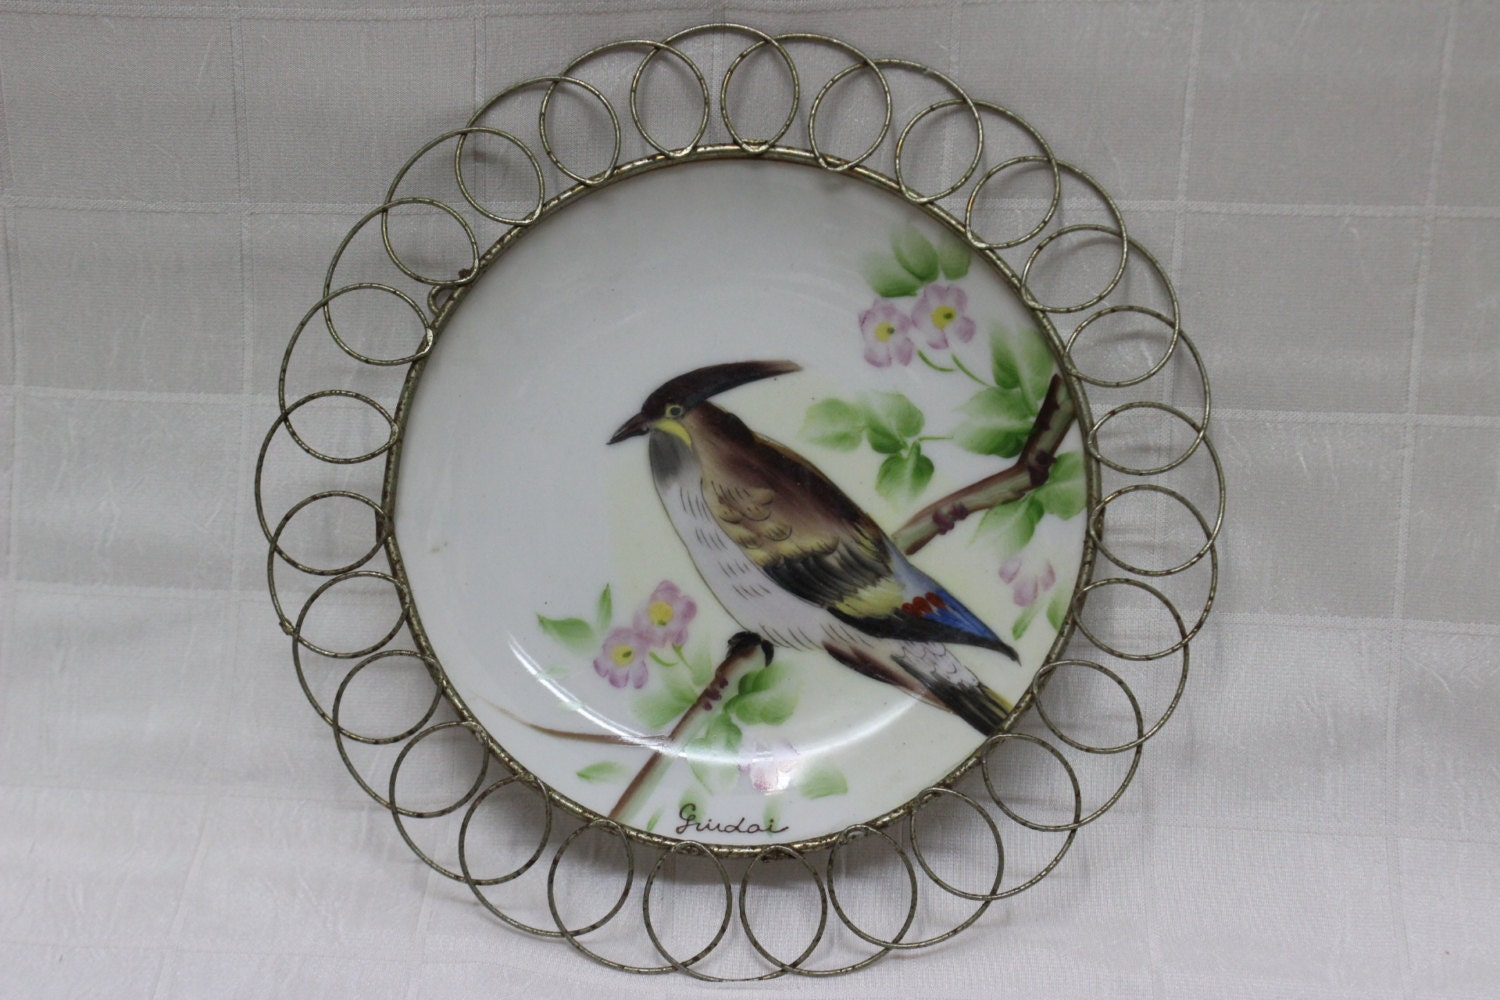 Decorative wall plate hanger : Decorative wall hanging plate hand painted in japan